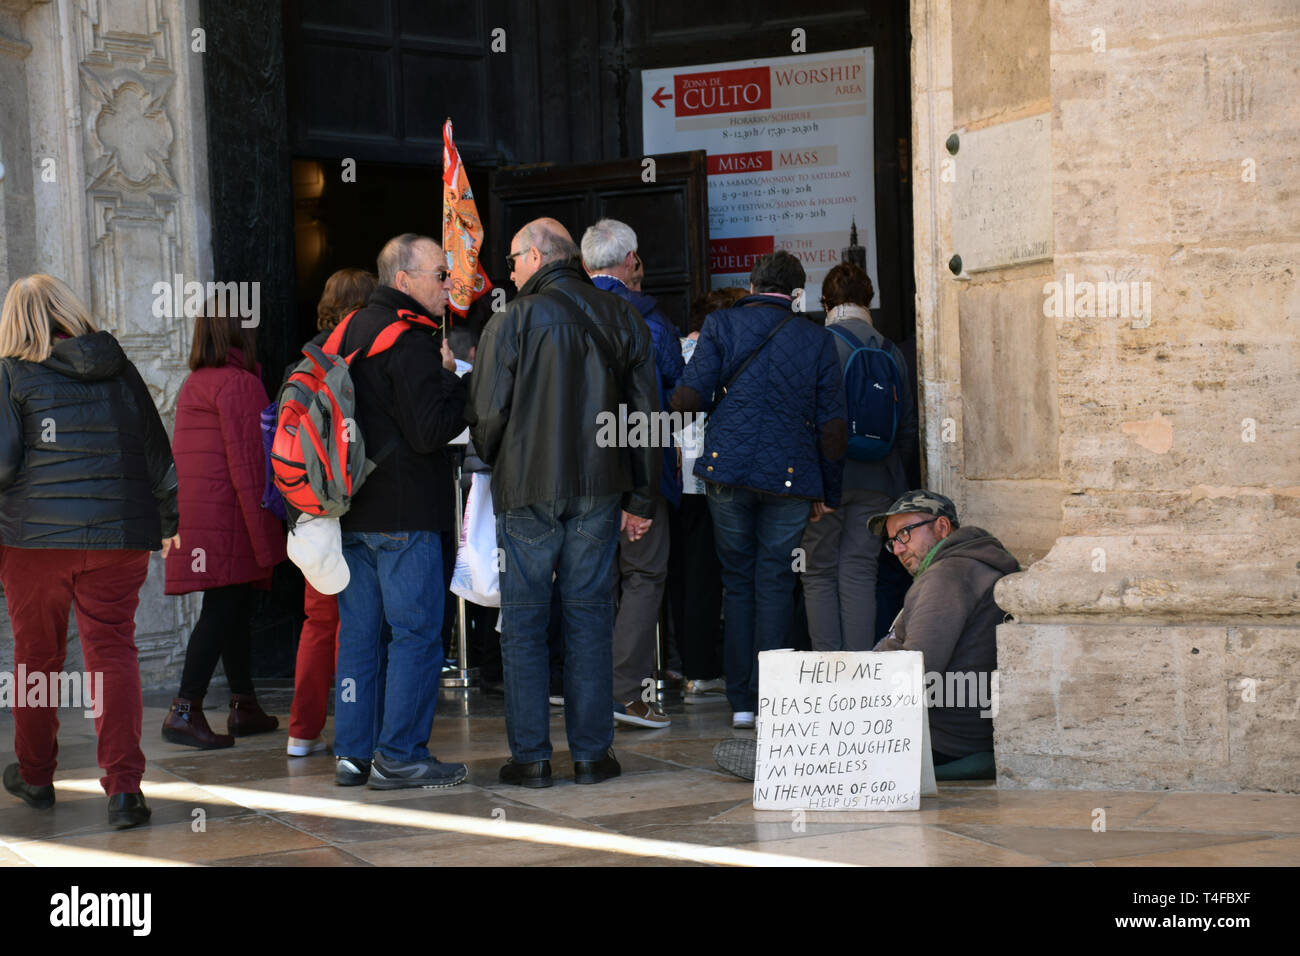 Beggar outside Valencia cathedral, Spain 2019 - Stock Image